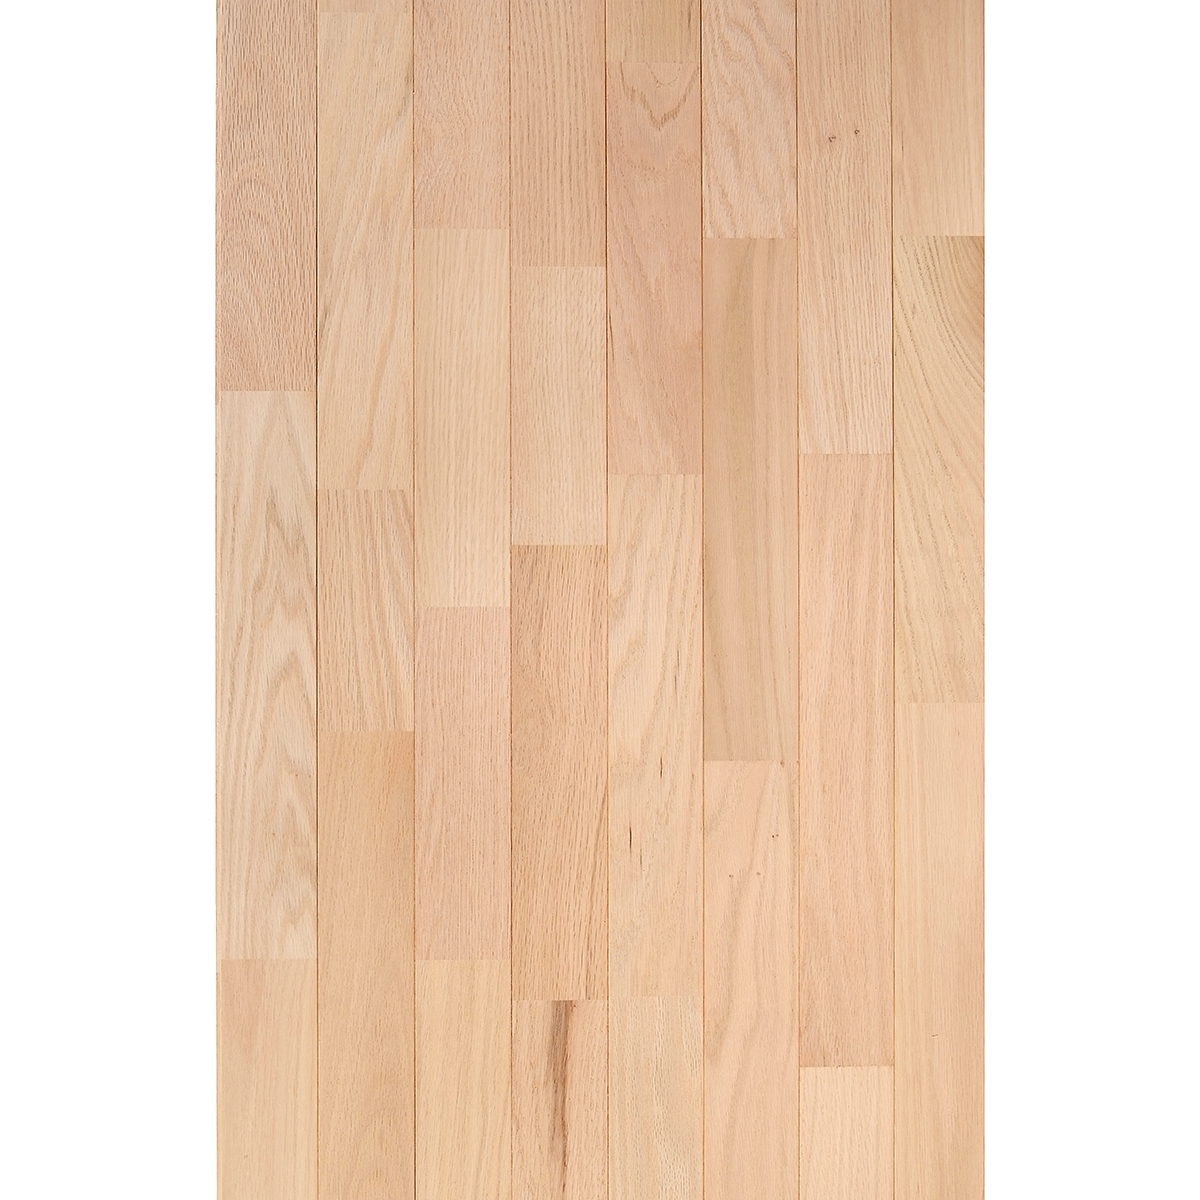 Red Oak 3 8 X 2 7 Finger Jointed